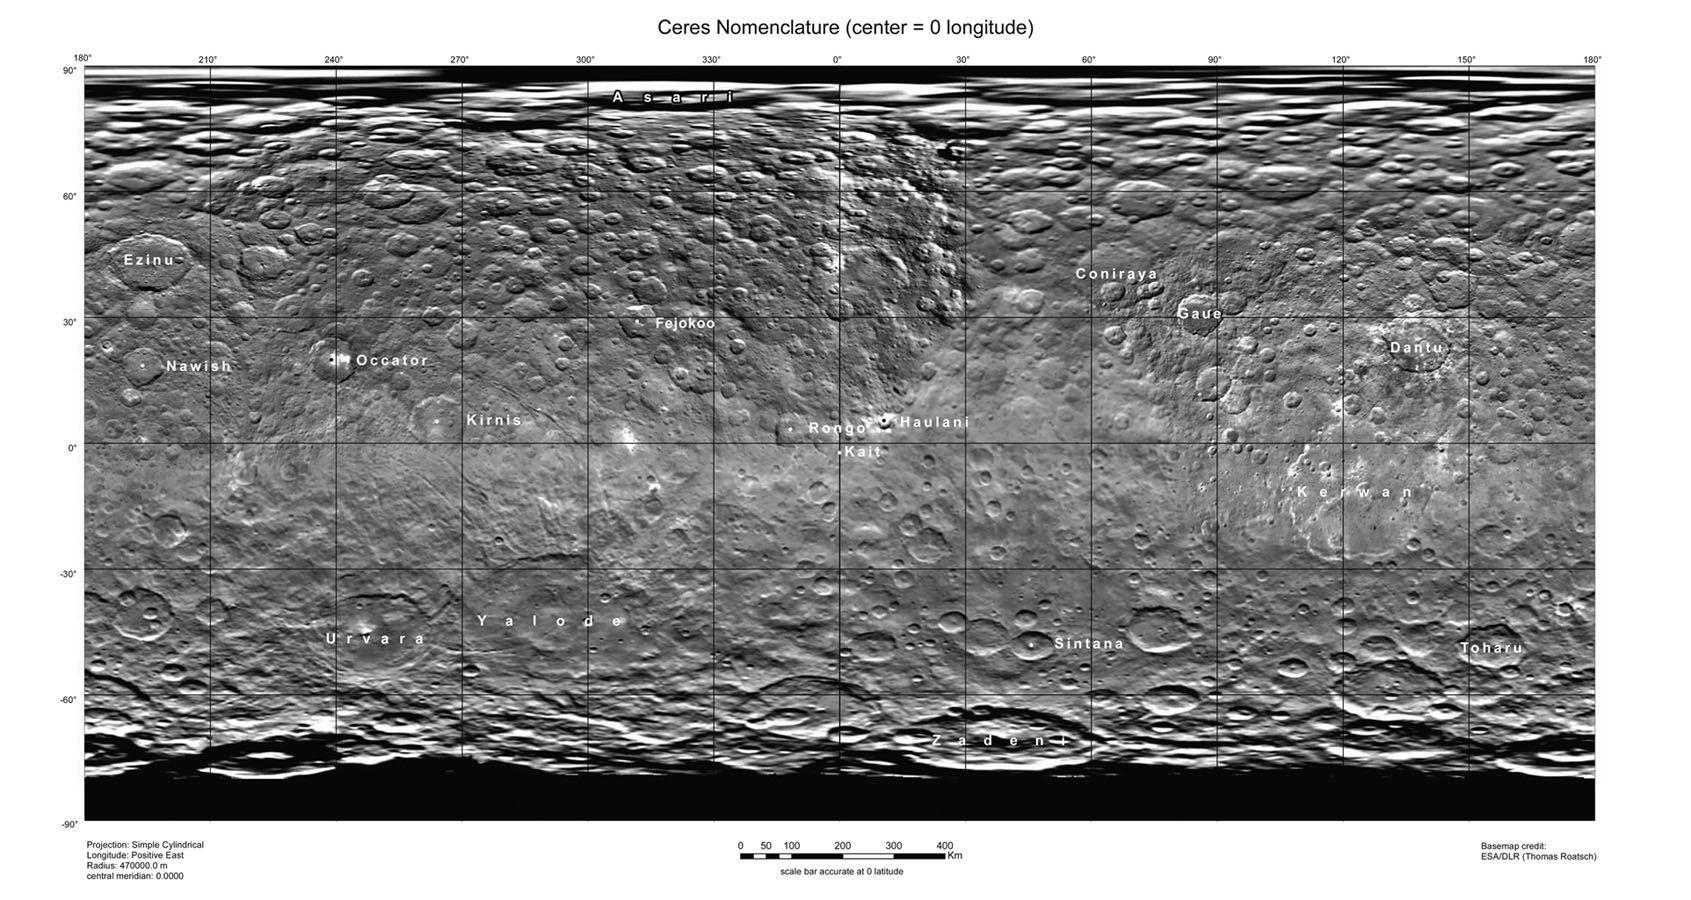 Map of Ceres with named craters